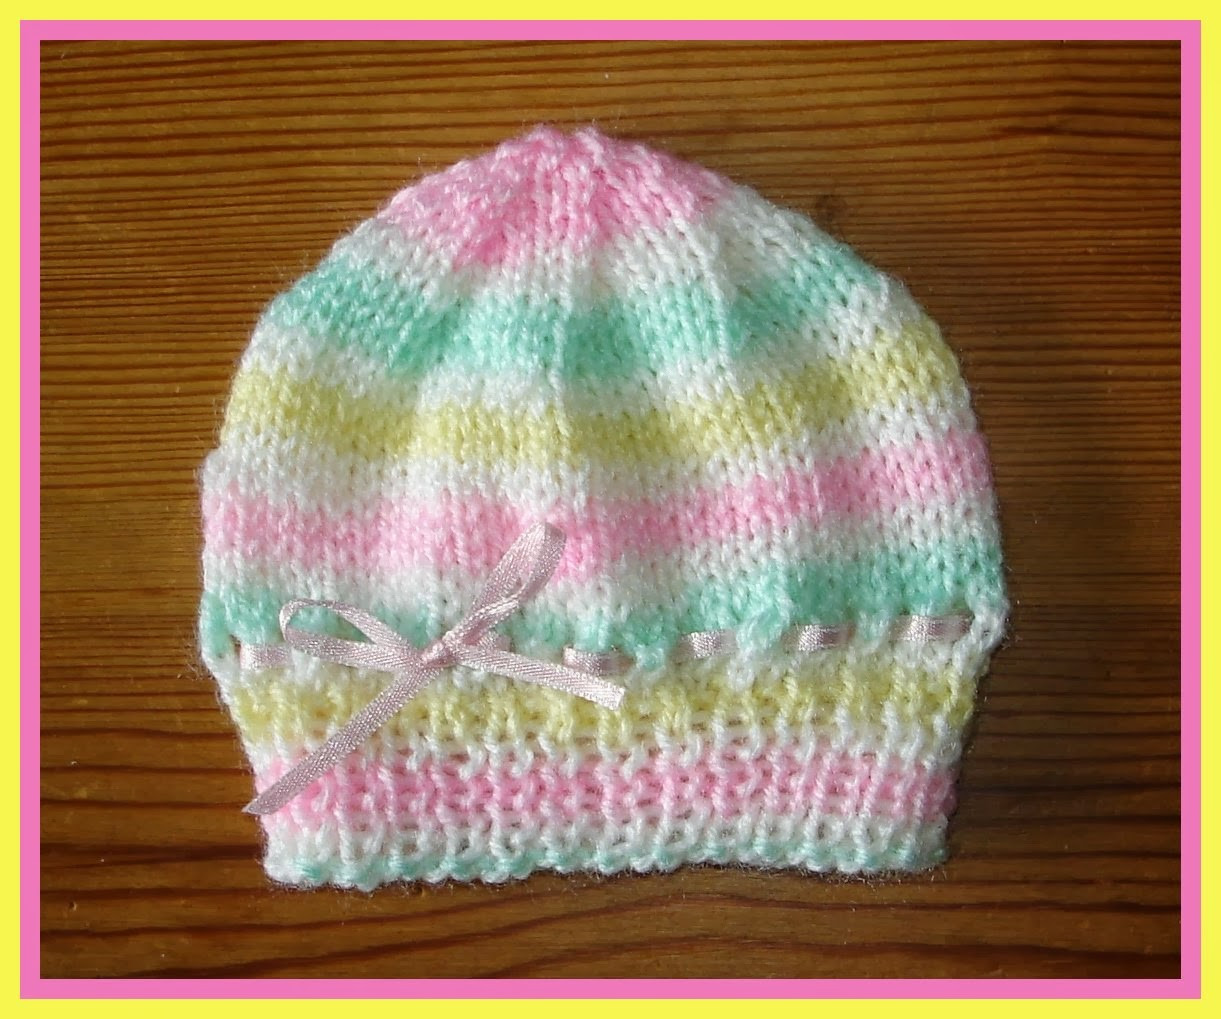 Best Of Marianna S Lazy Daisy Days Candystripe Knitted Baby Hats Infant Knit Hat Of Beautiful 48 Photos Infant Knit Hat